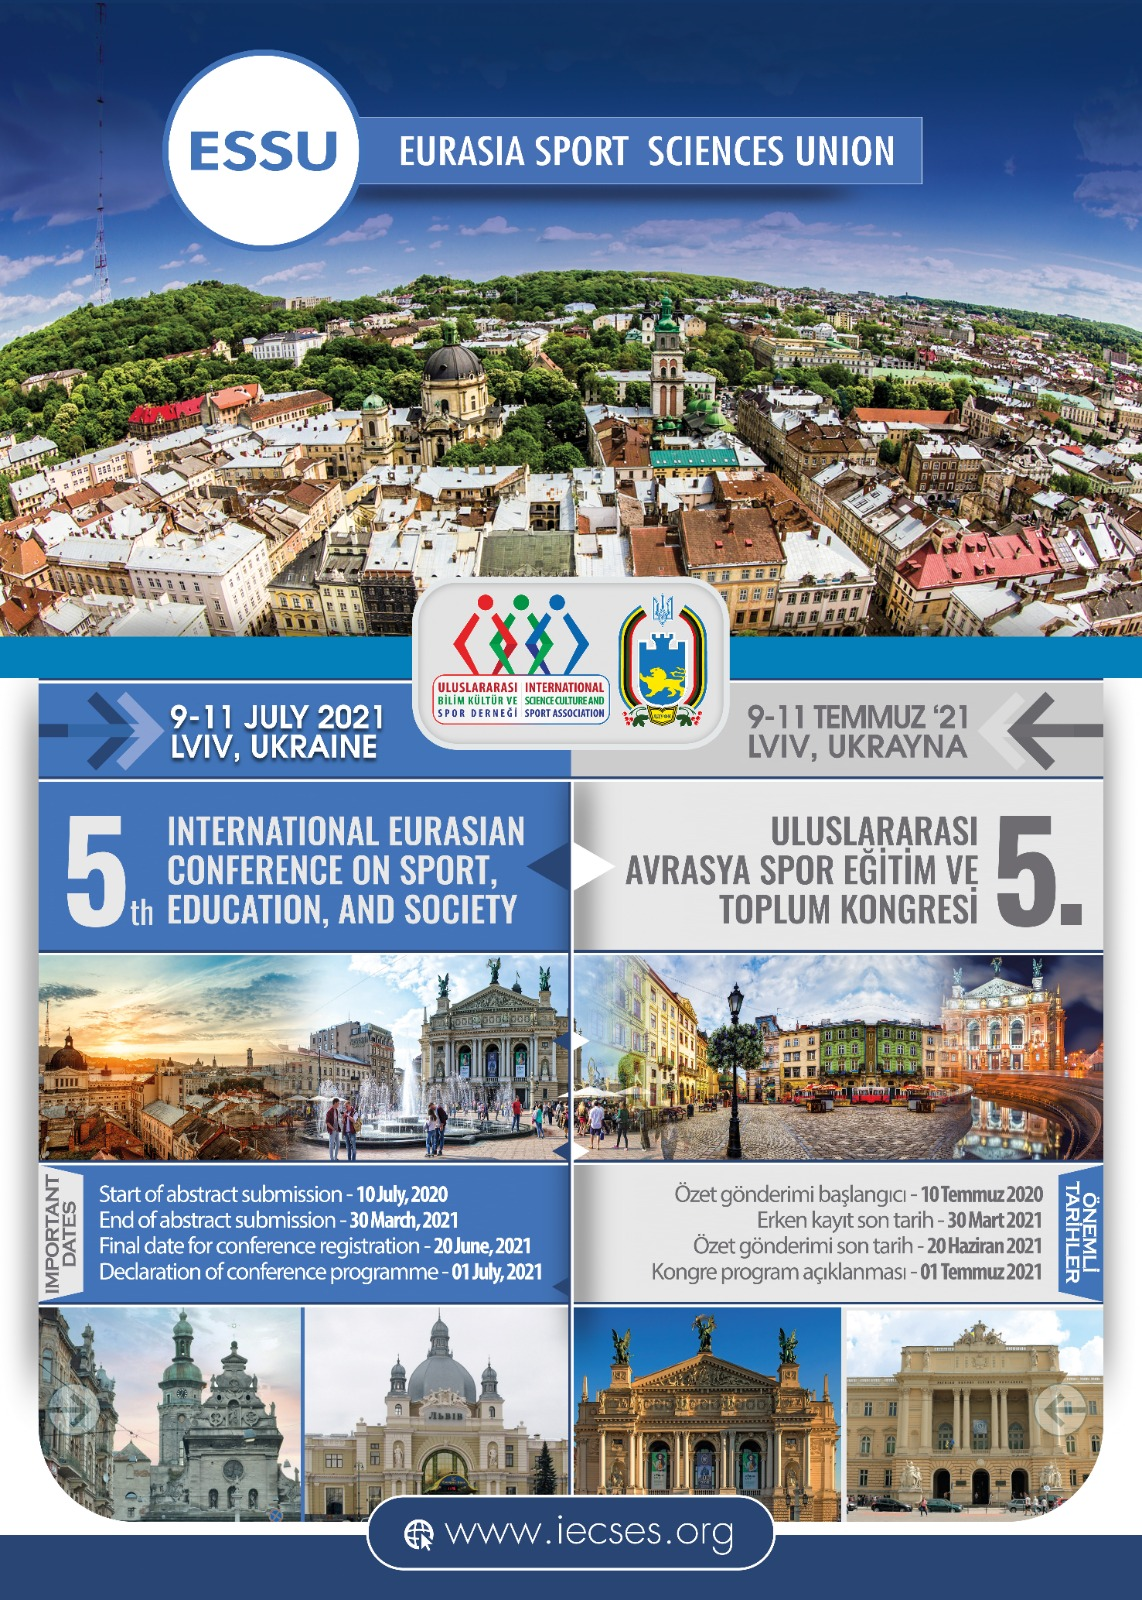 5th Internationaly Eurasian Conference on Sport,Education, And Society, 28-31 Mayıs Lviv/May, UKRAINE